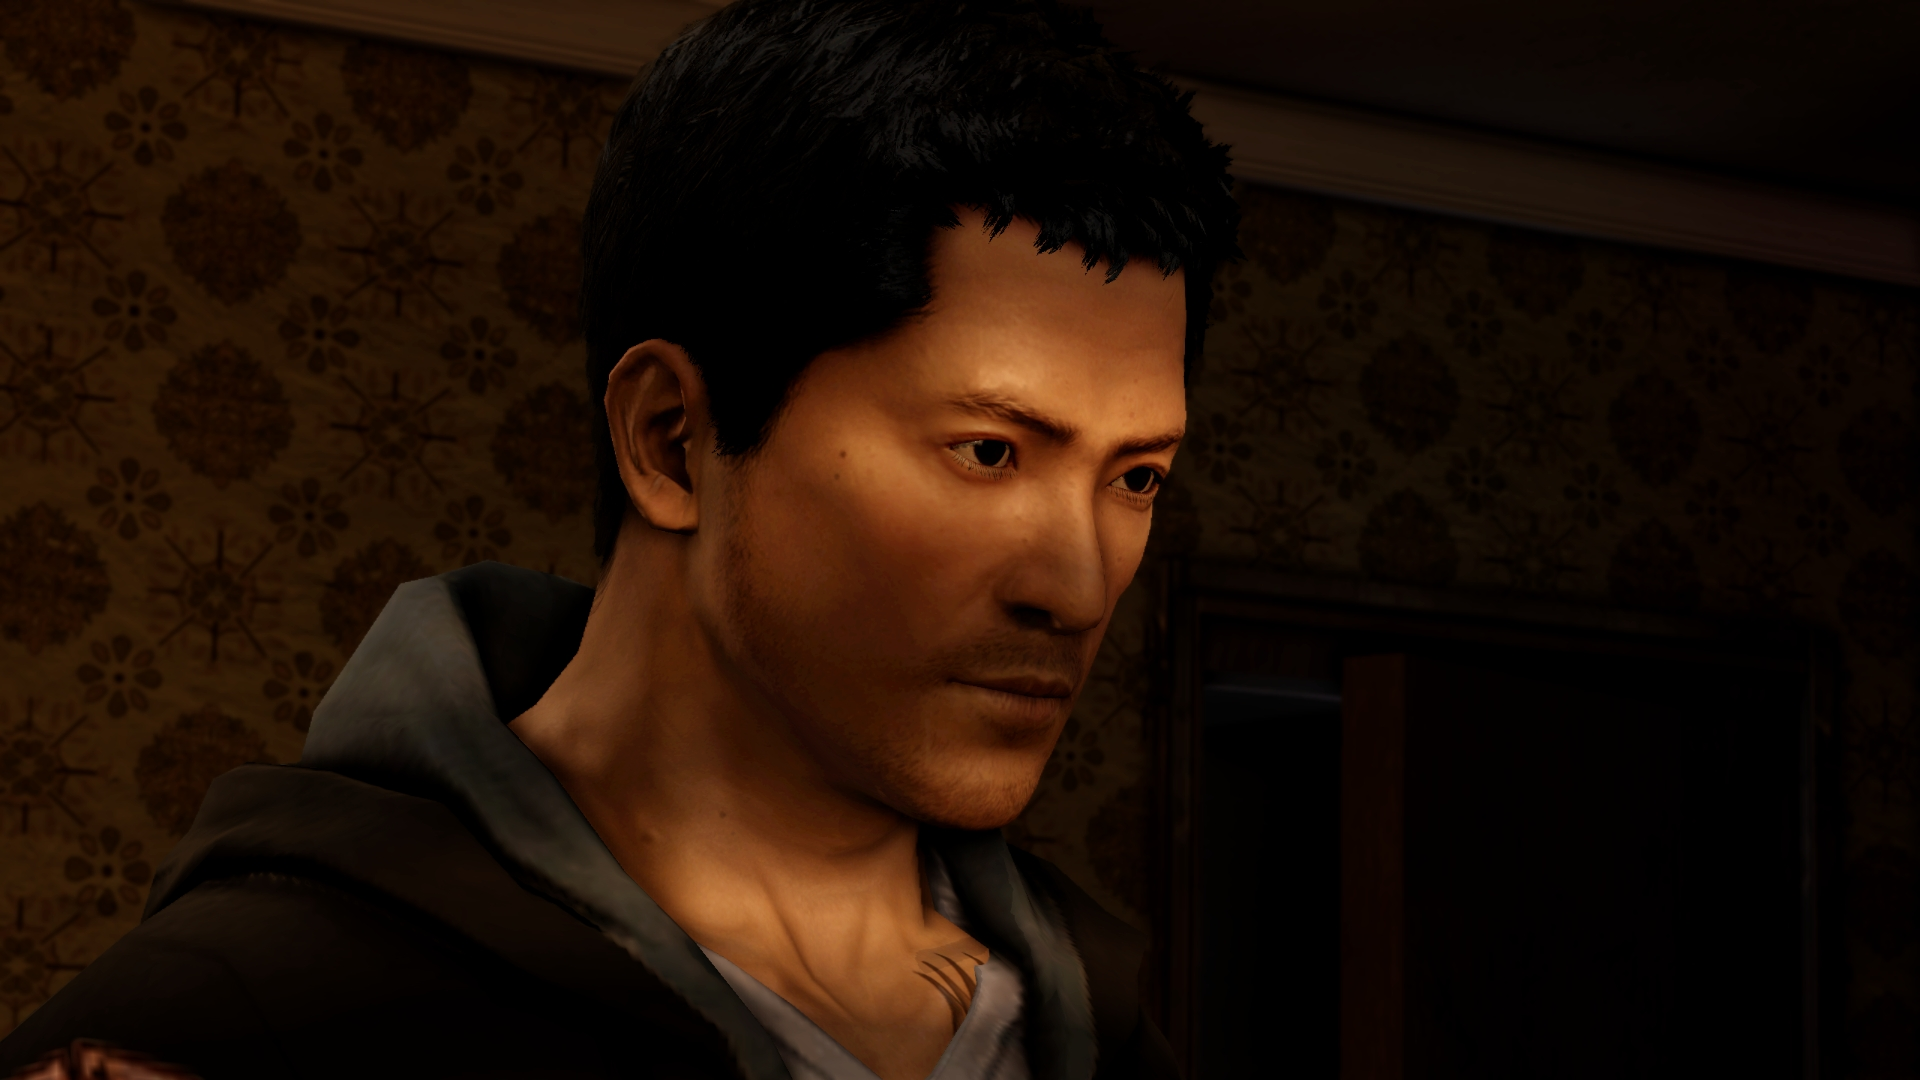 On Sleeping Dogs, Wei Shen, and sexually attractive male heroes